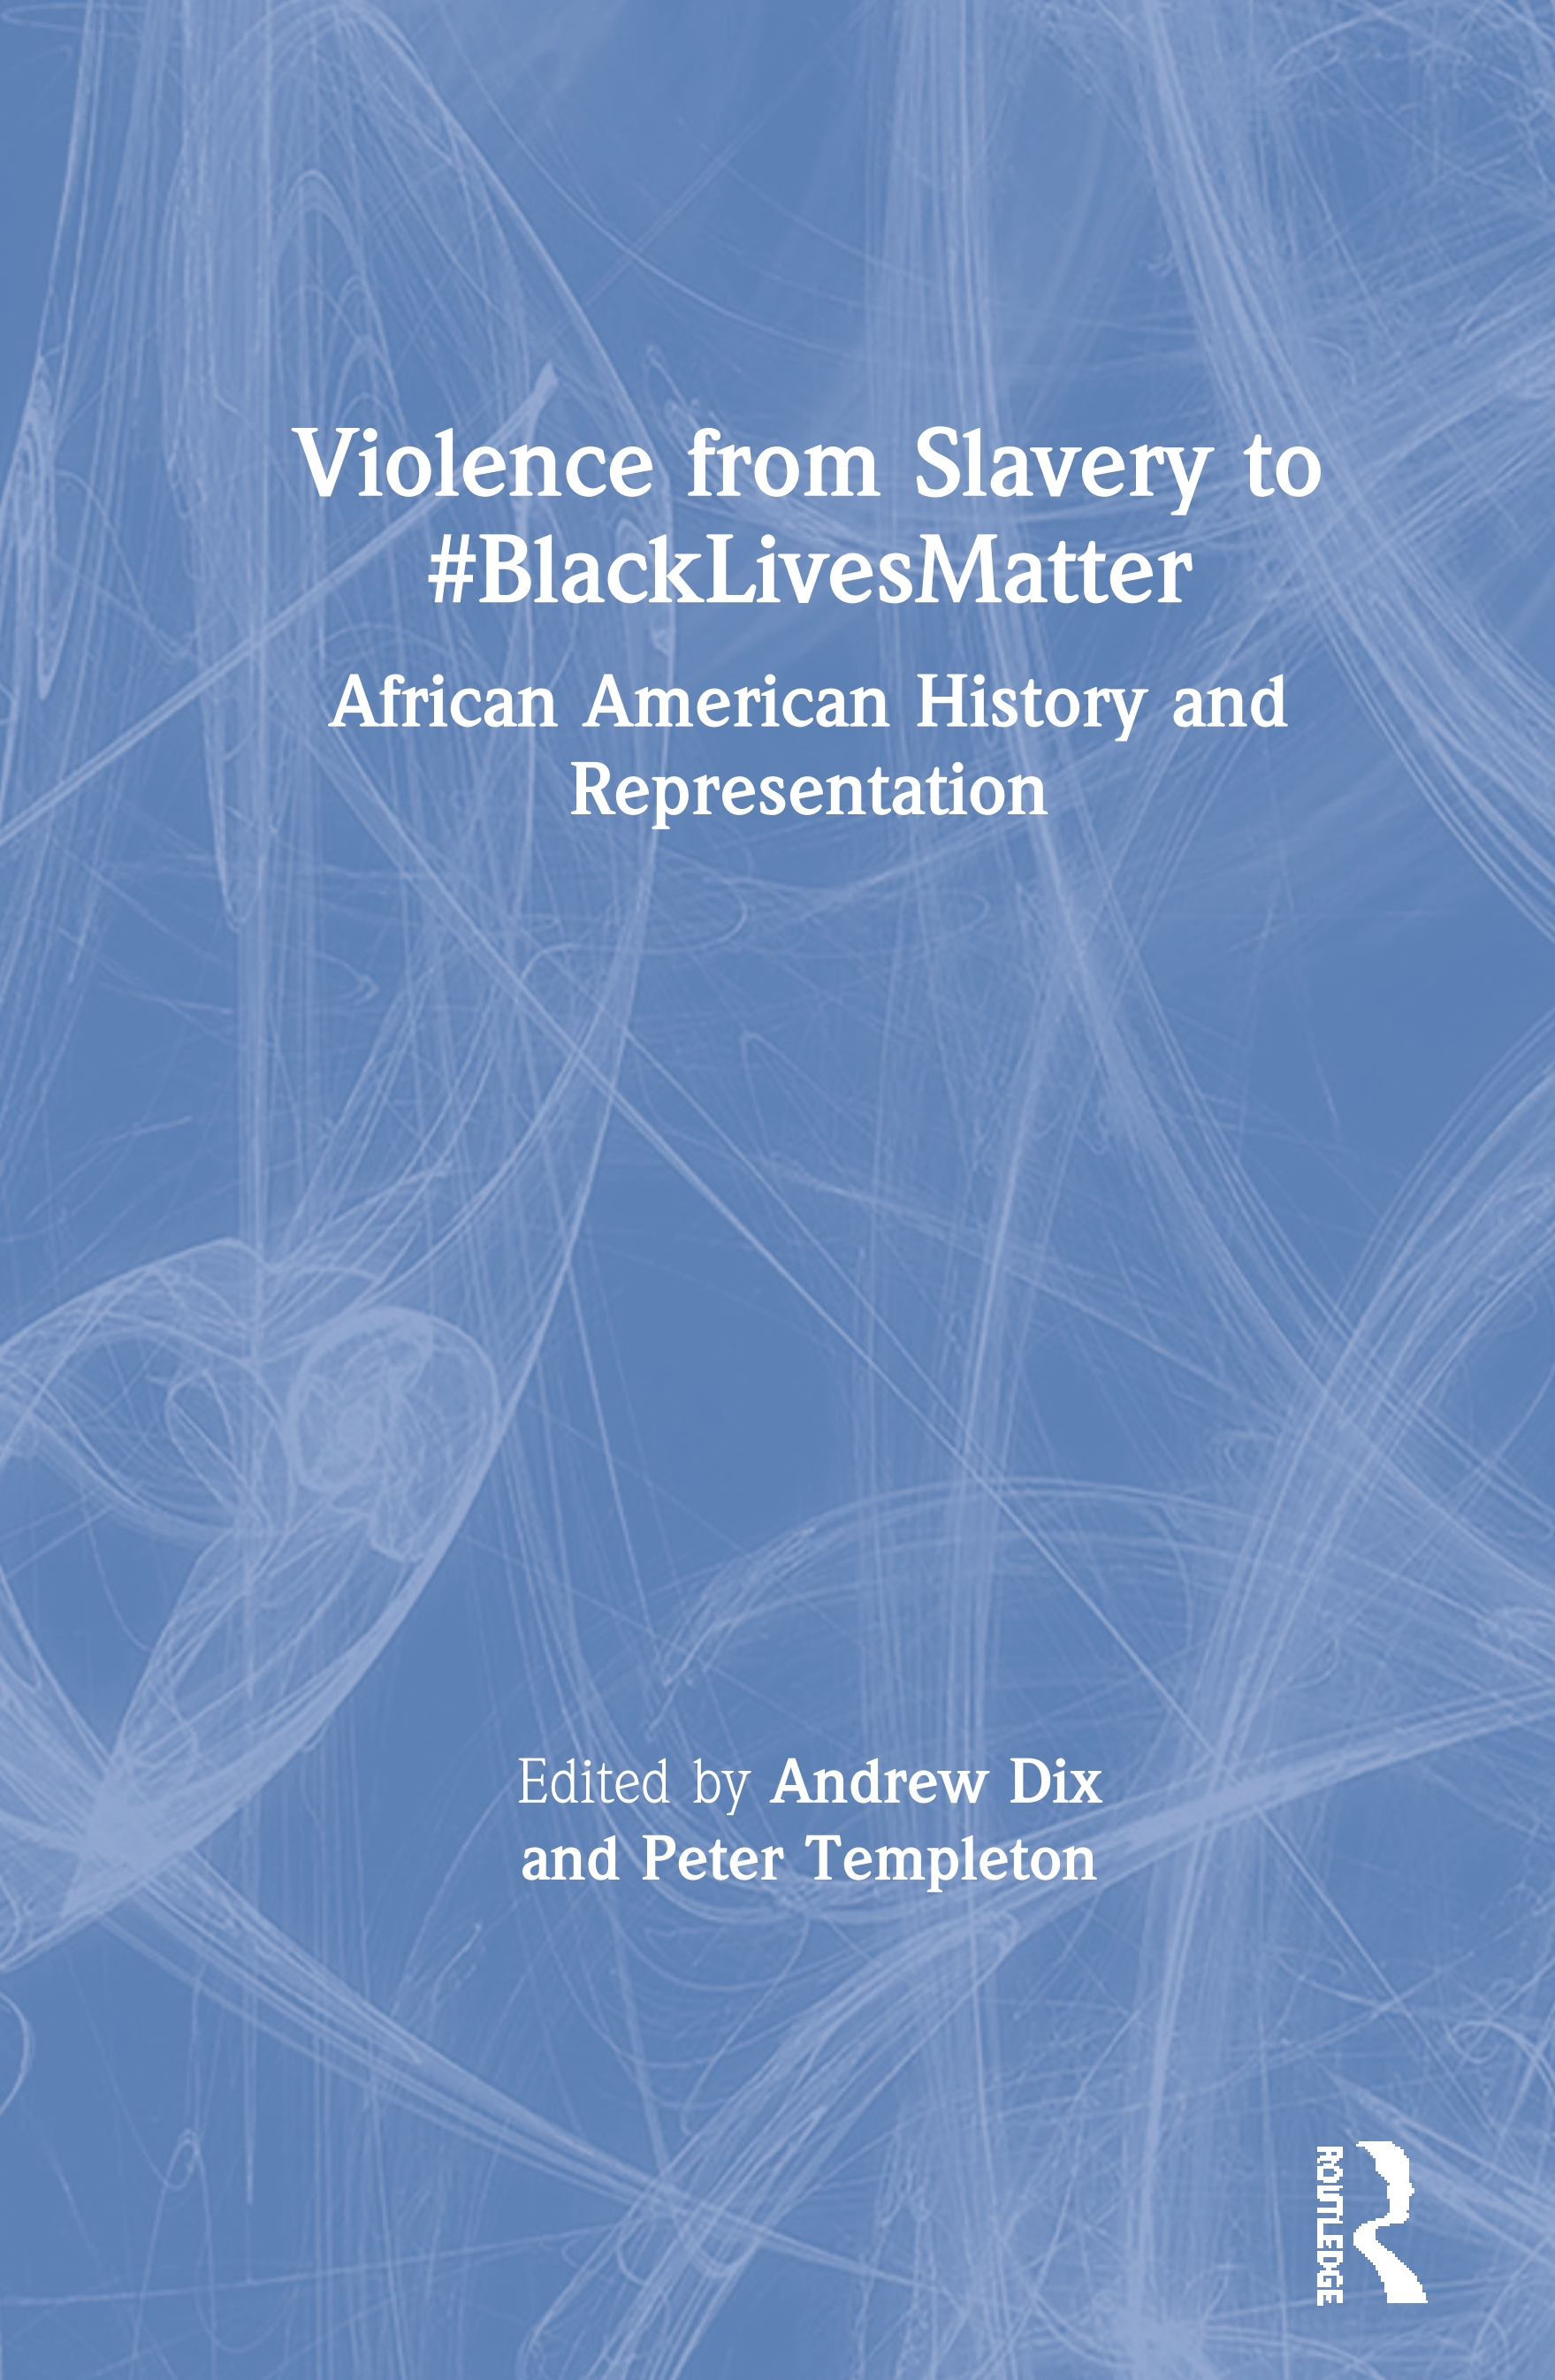 Violence from Slavery to #BlackLivesMatter: African American History and Representation book cover